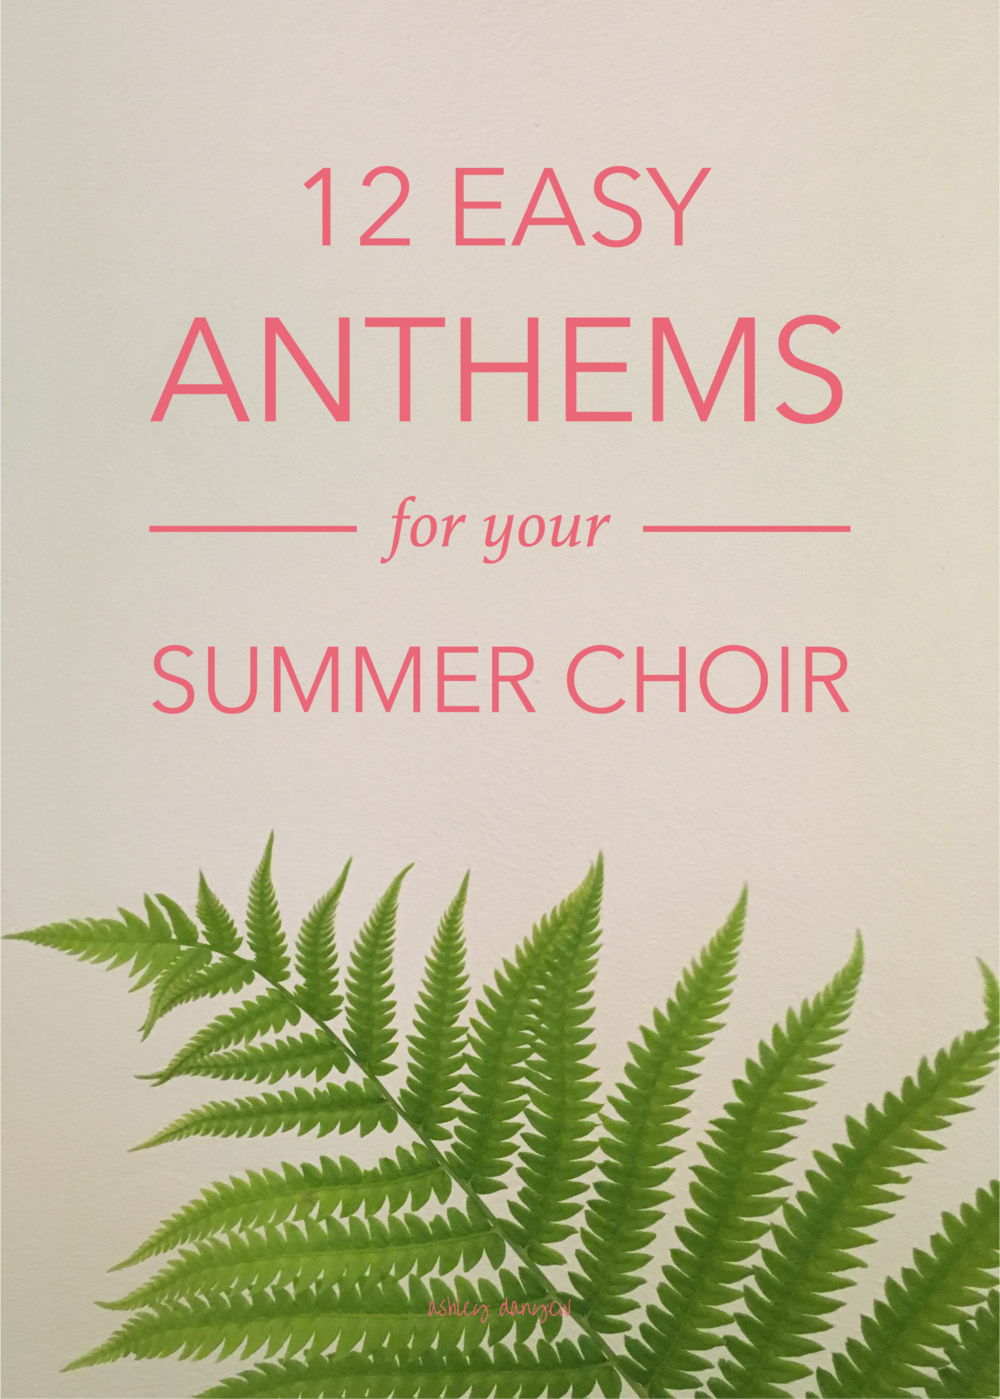 Copy of 12 Easy Anthems for Your Summer Choir